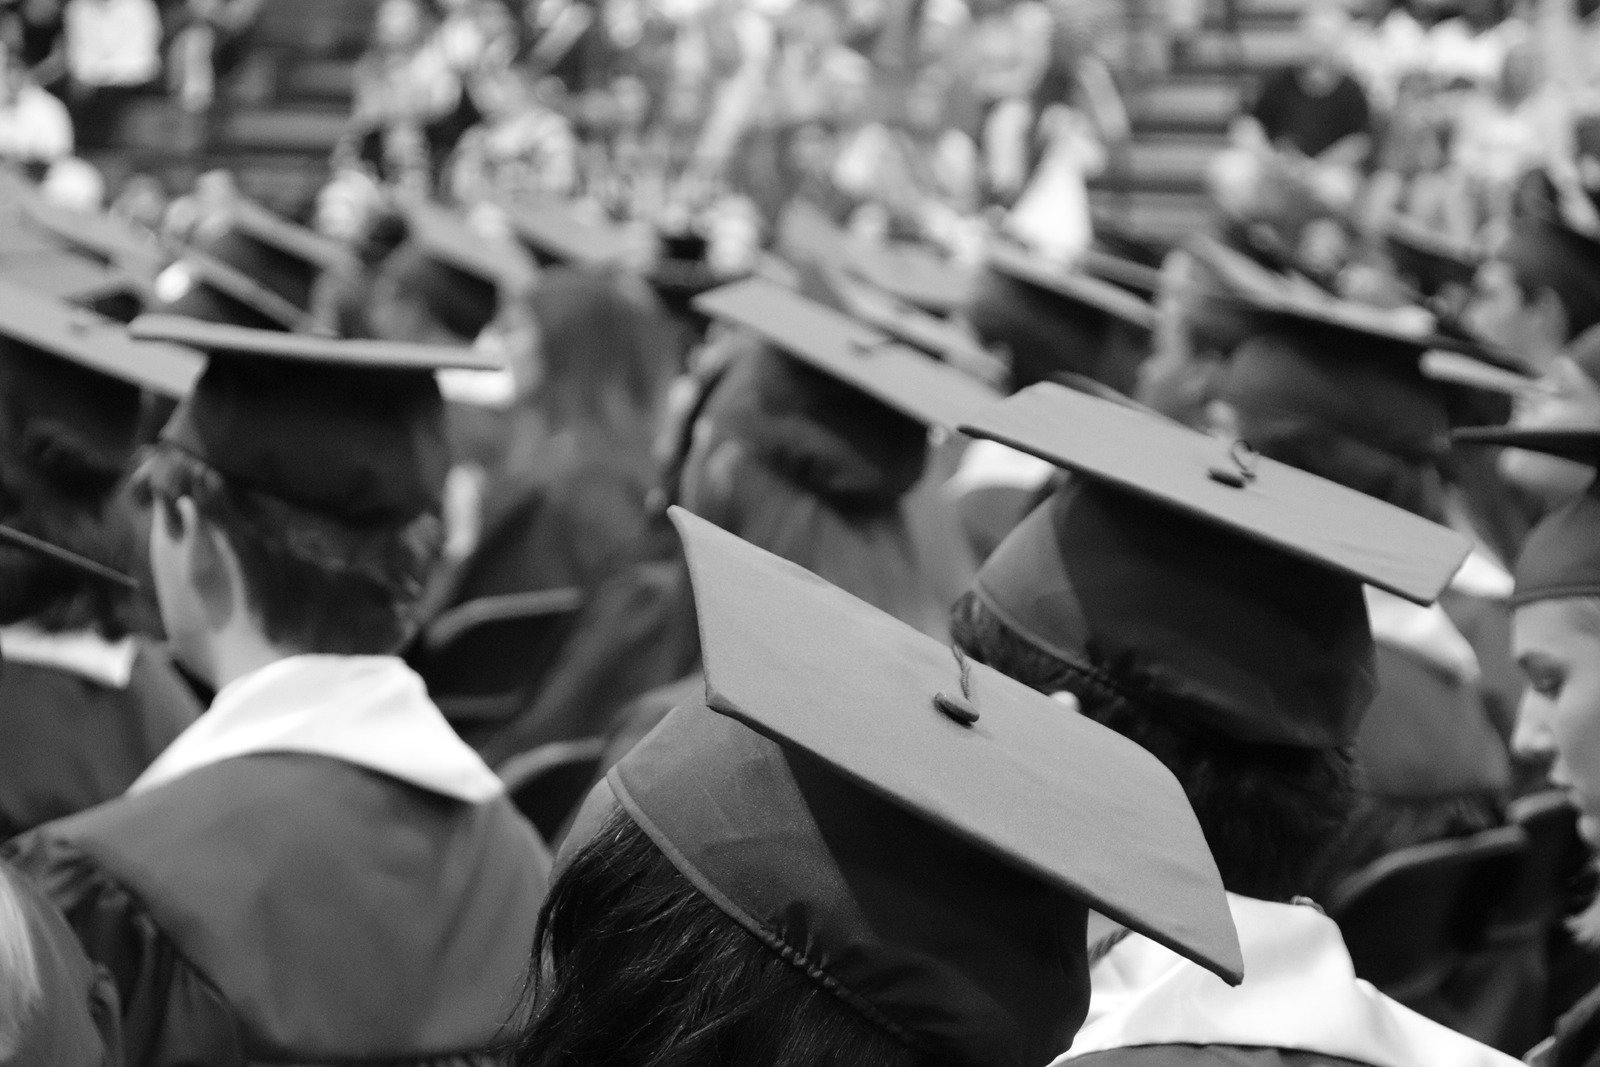 This is an image of graduates wearing caps and gowns symbolizing student success.